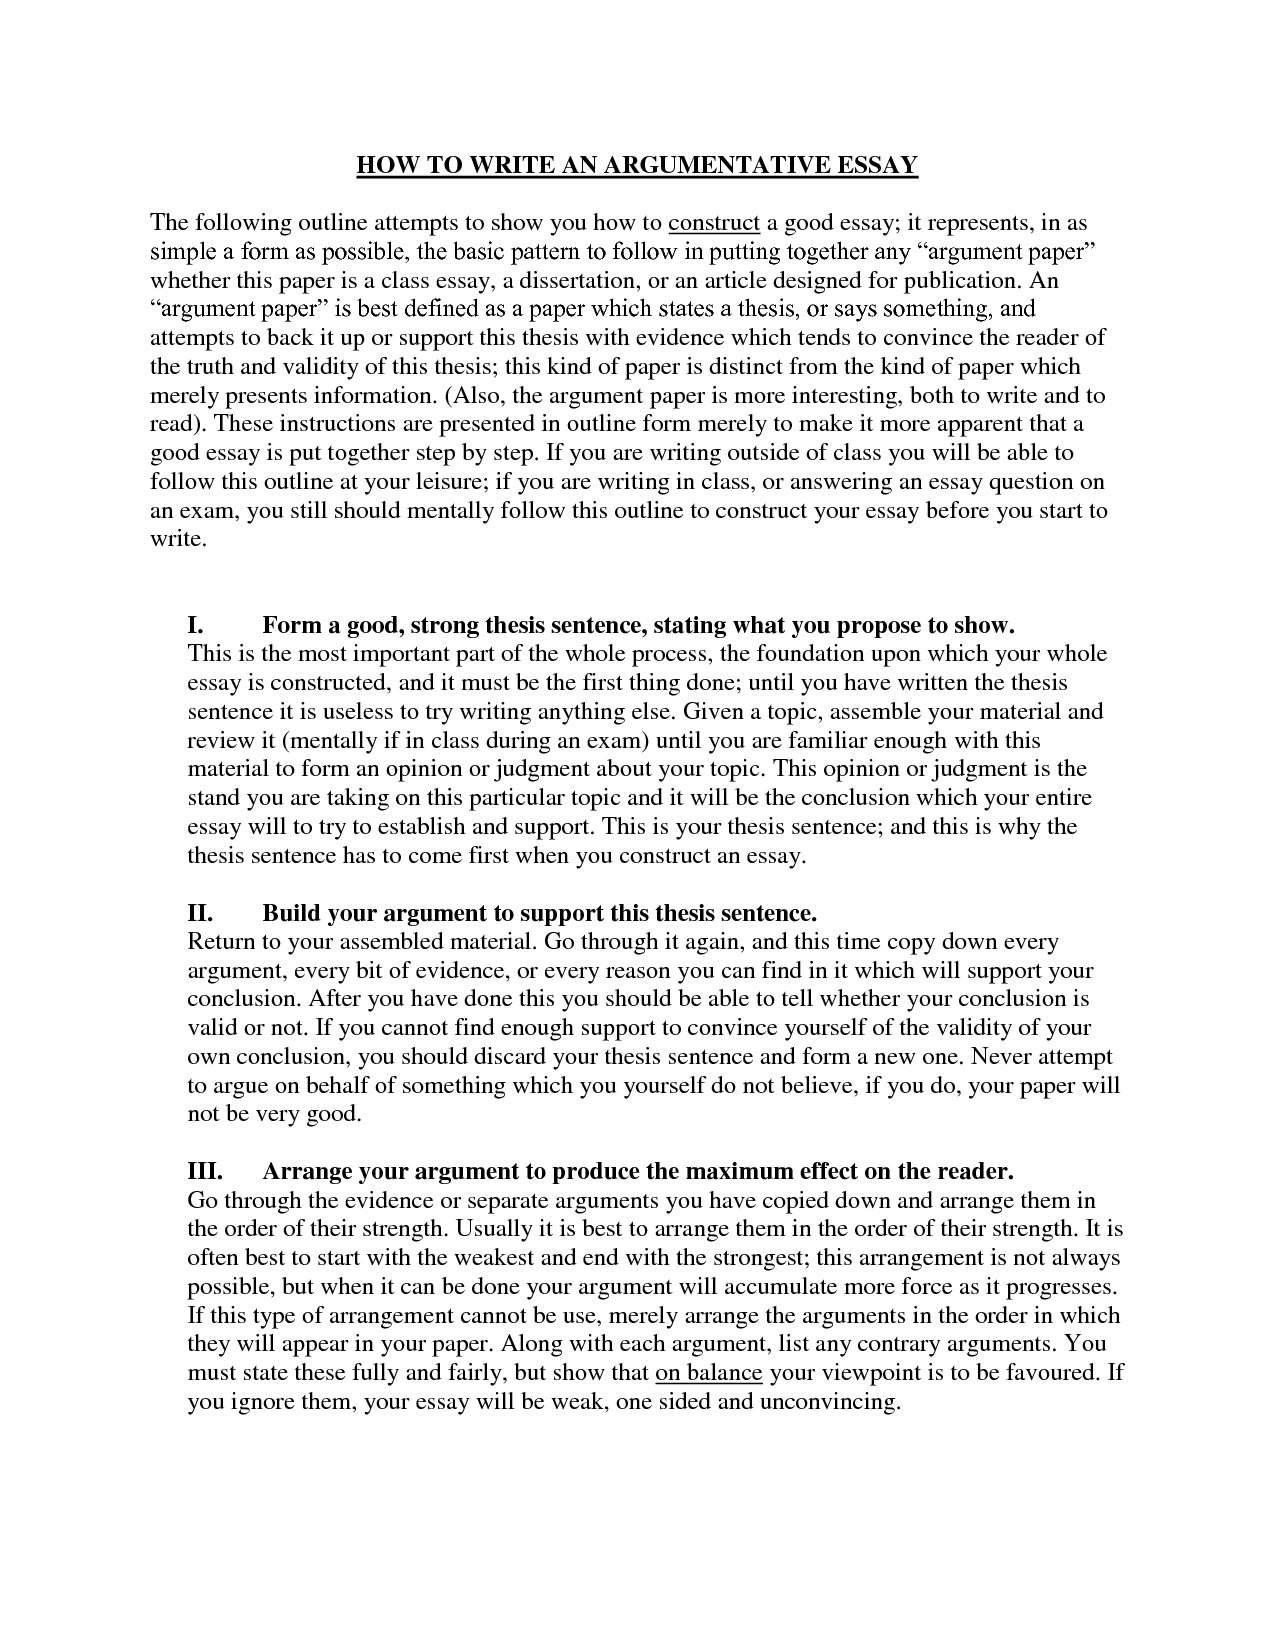 Writing By Sermenoaj 253f713460eab349983c146a7c5a9c4903f4038d Write A 600 Words Blogs Articles Or Website Content Self Introduction Essay For College